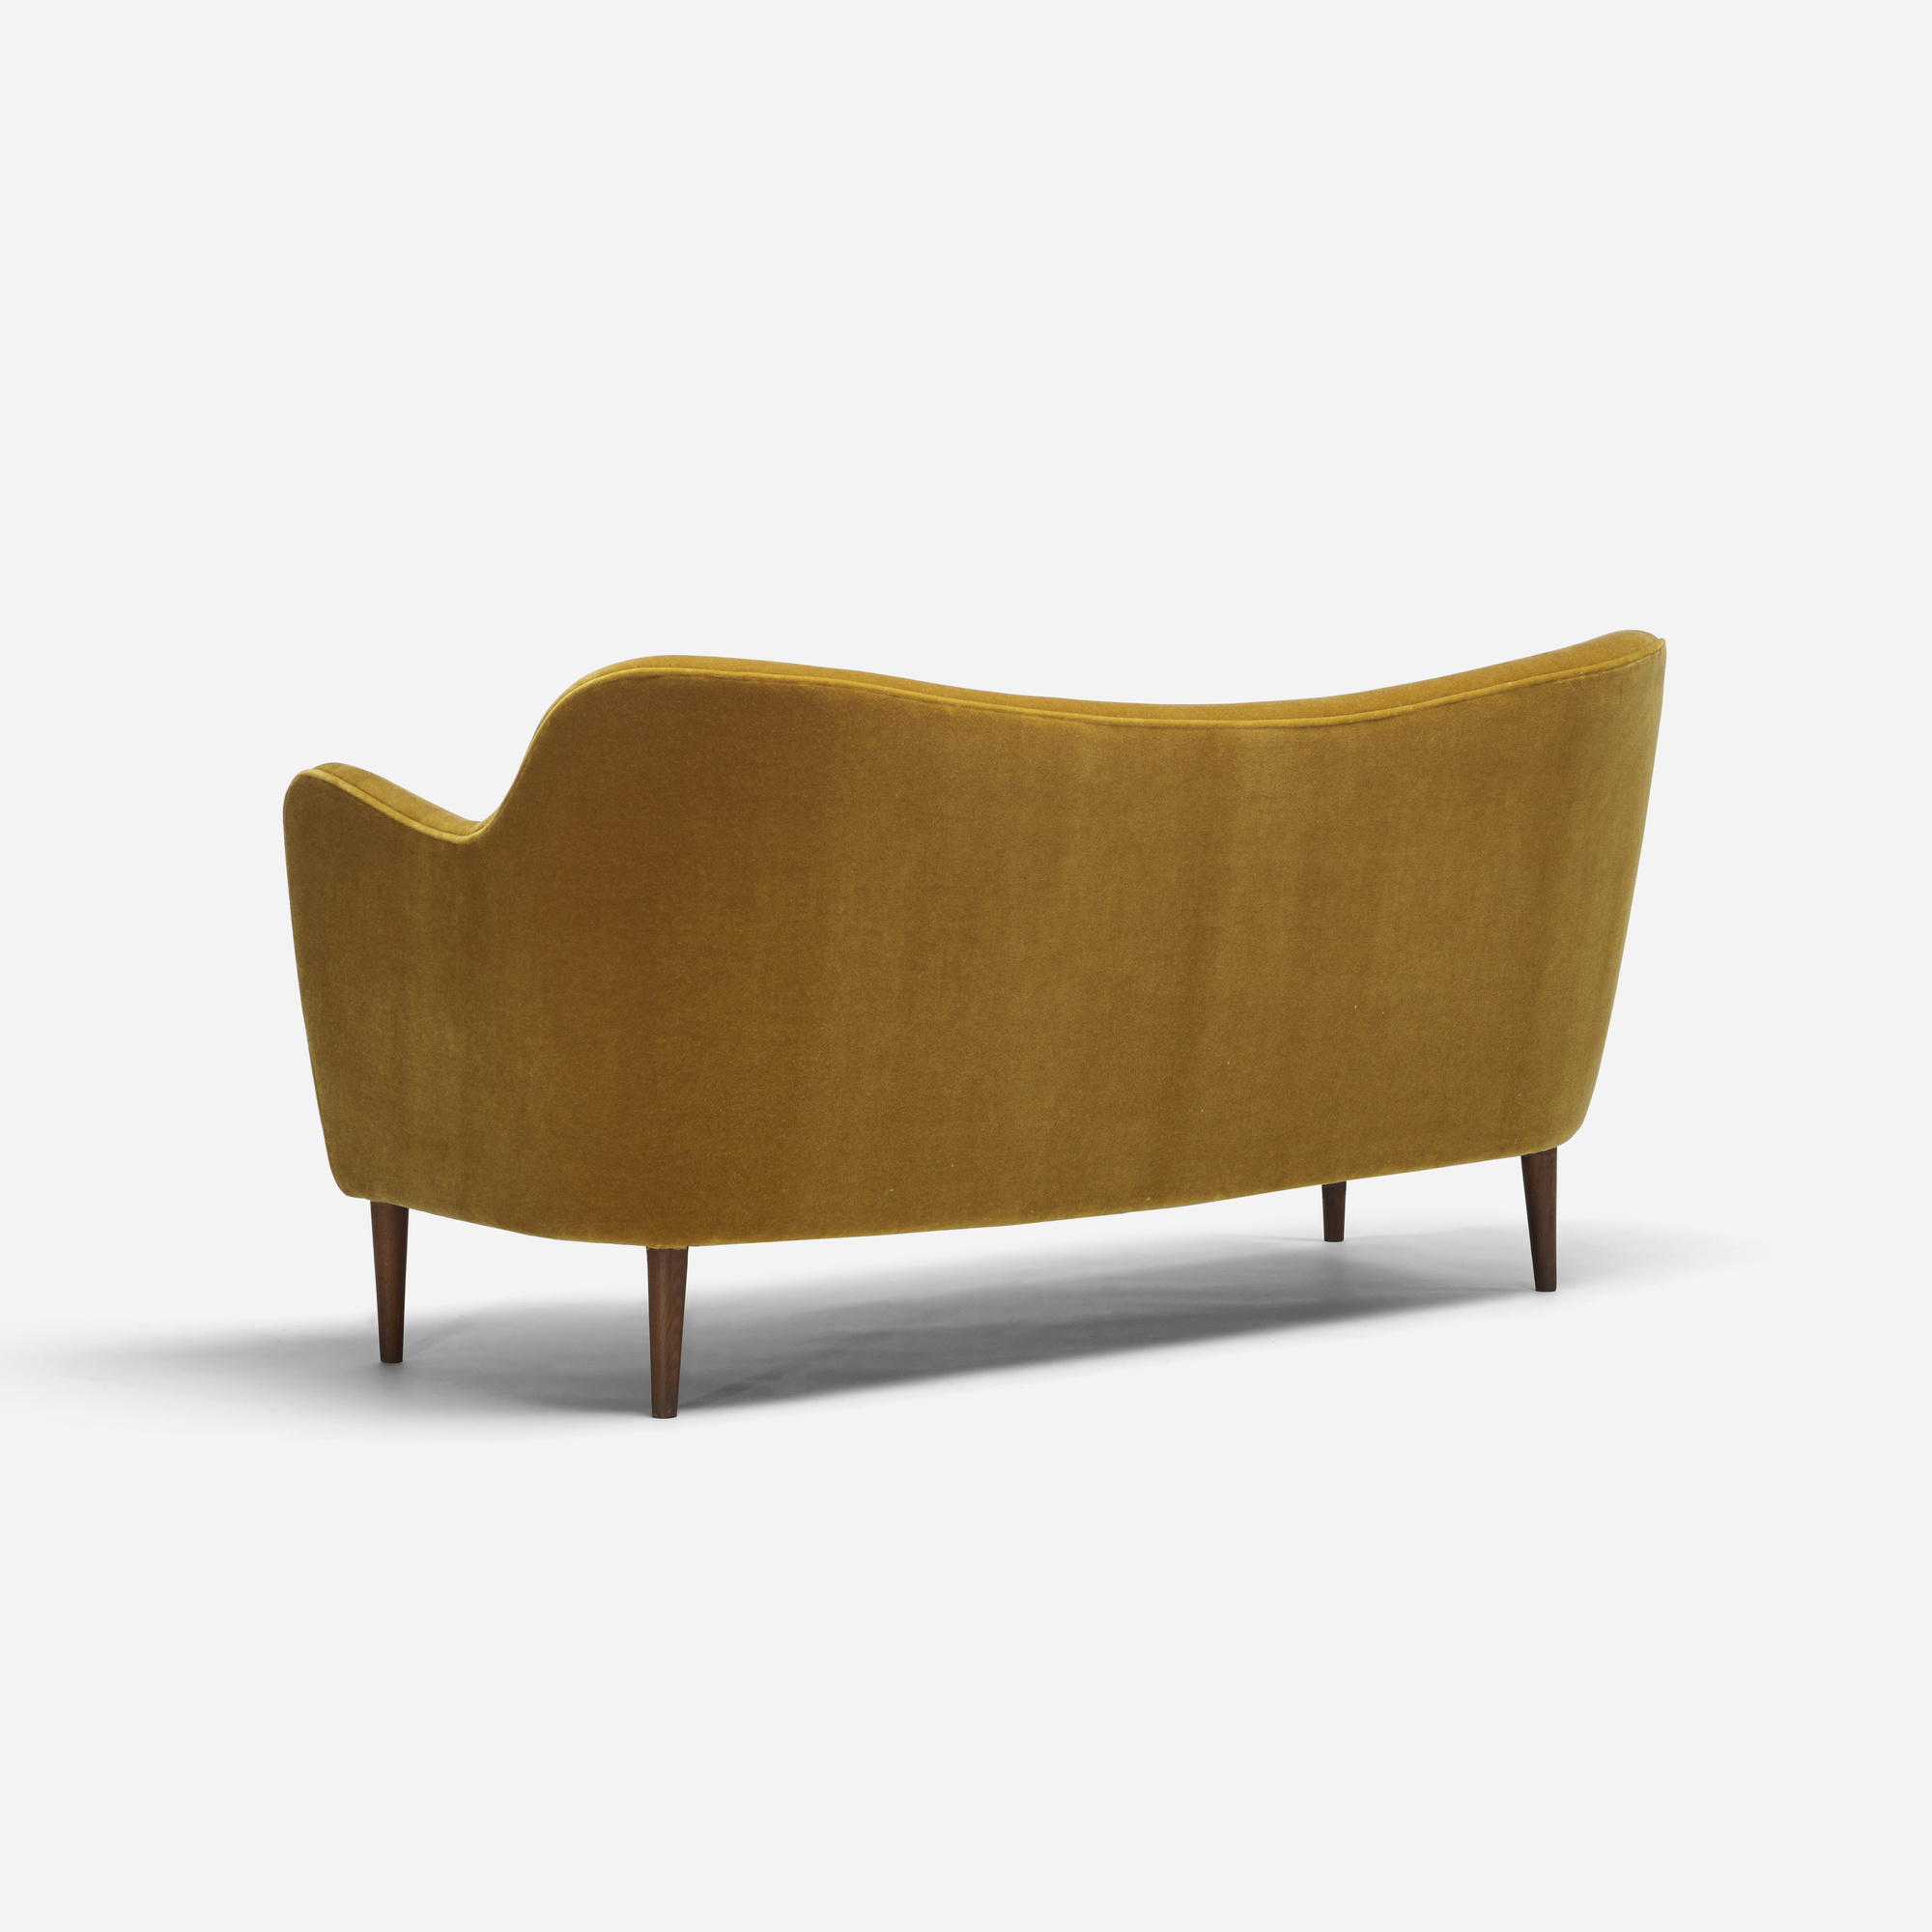 122: Finn Juhl / sofa (2 of 3)